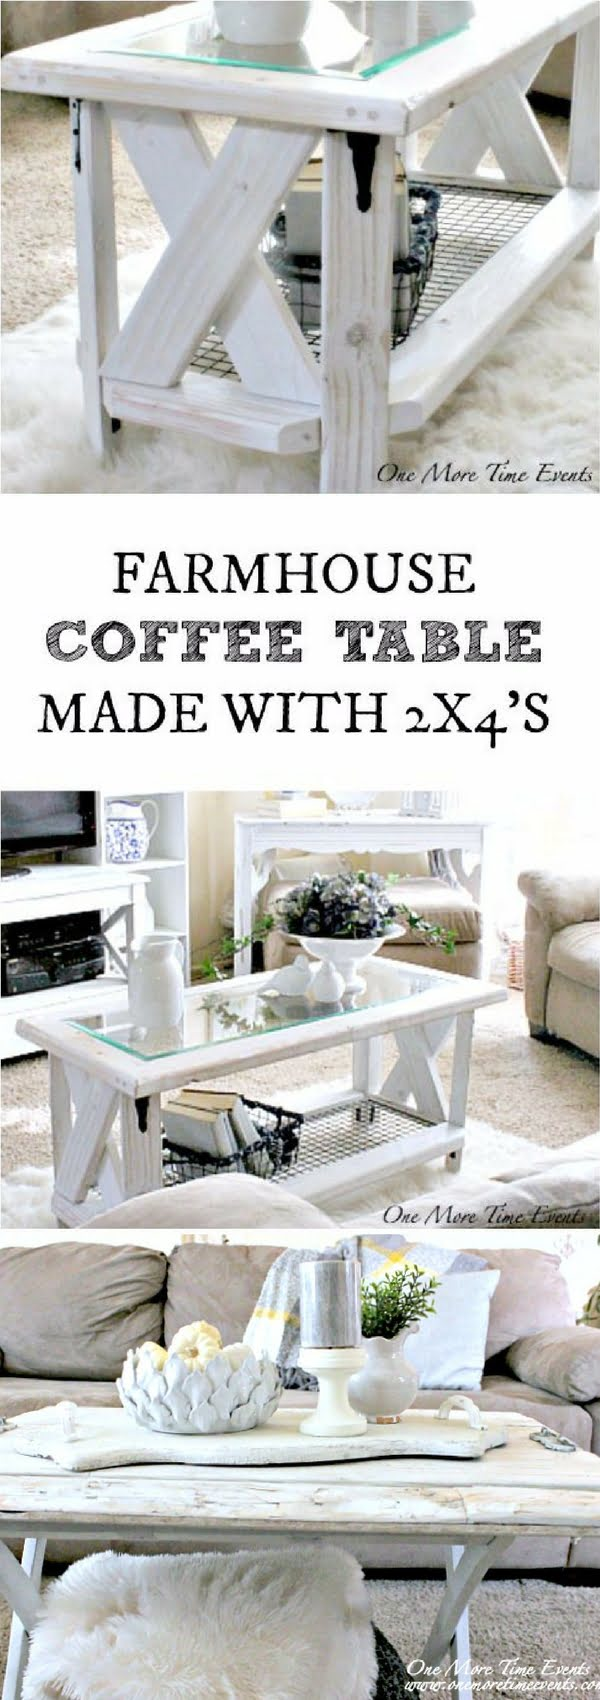 How to make a DIY farmhouse coffee table from 2x4s